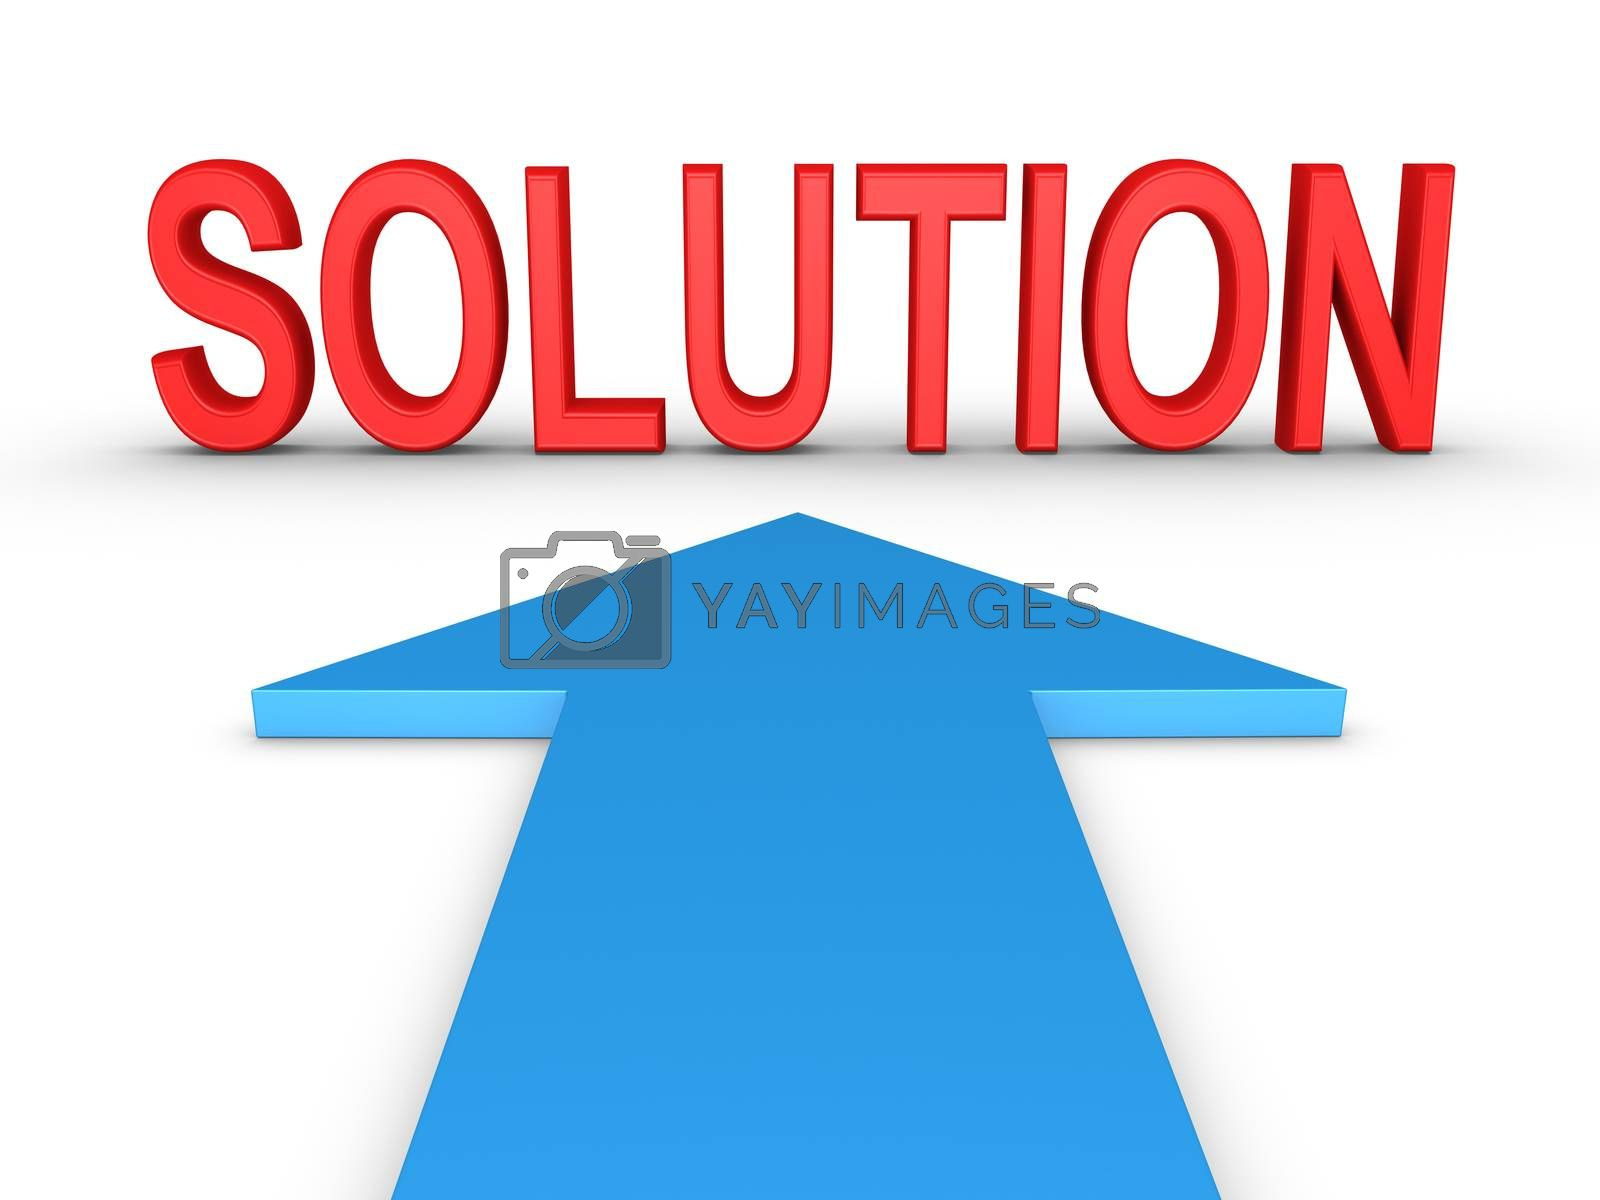 Arrow on the ground is pointing at a SOLUTION word